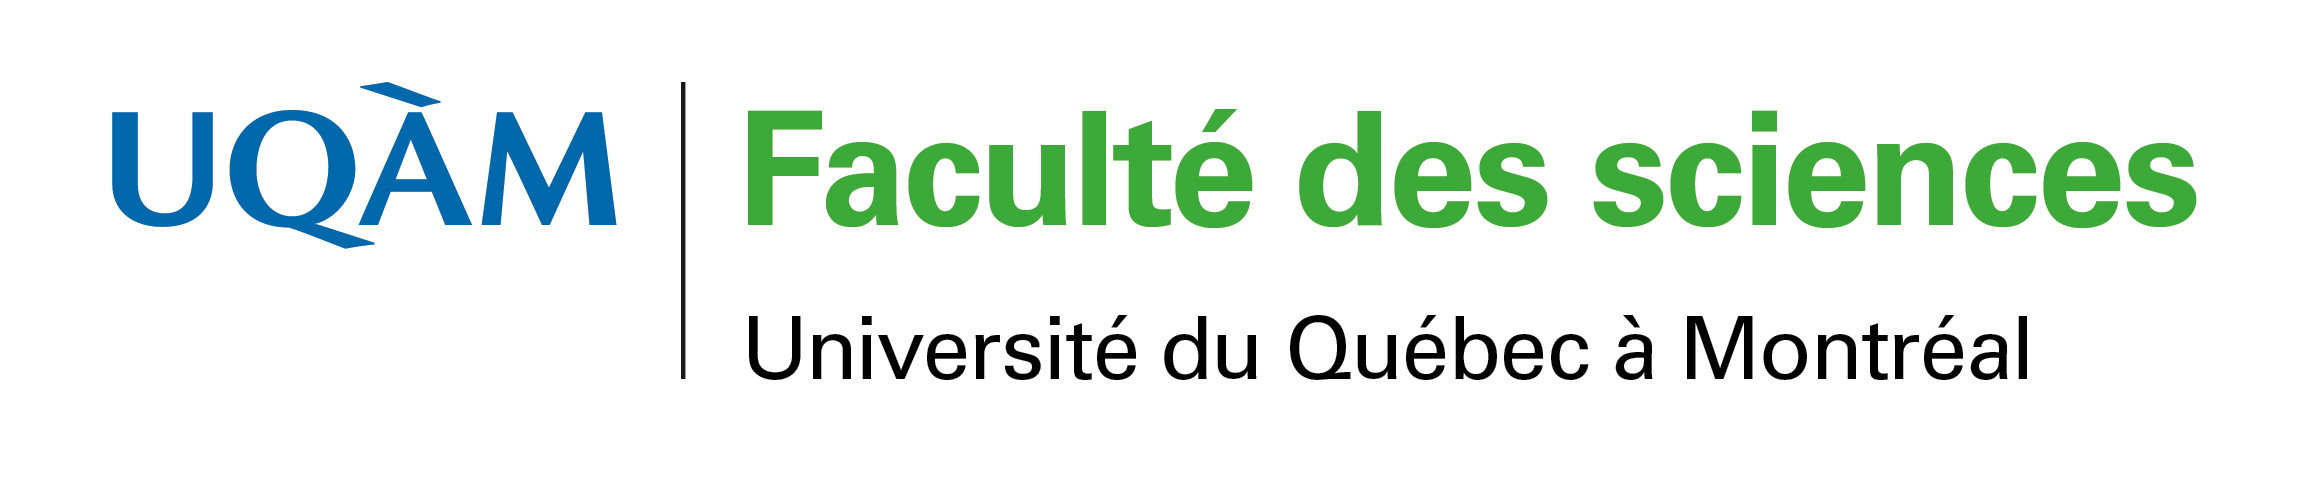 lg Faculte sciences externe COUL